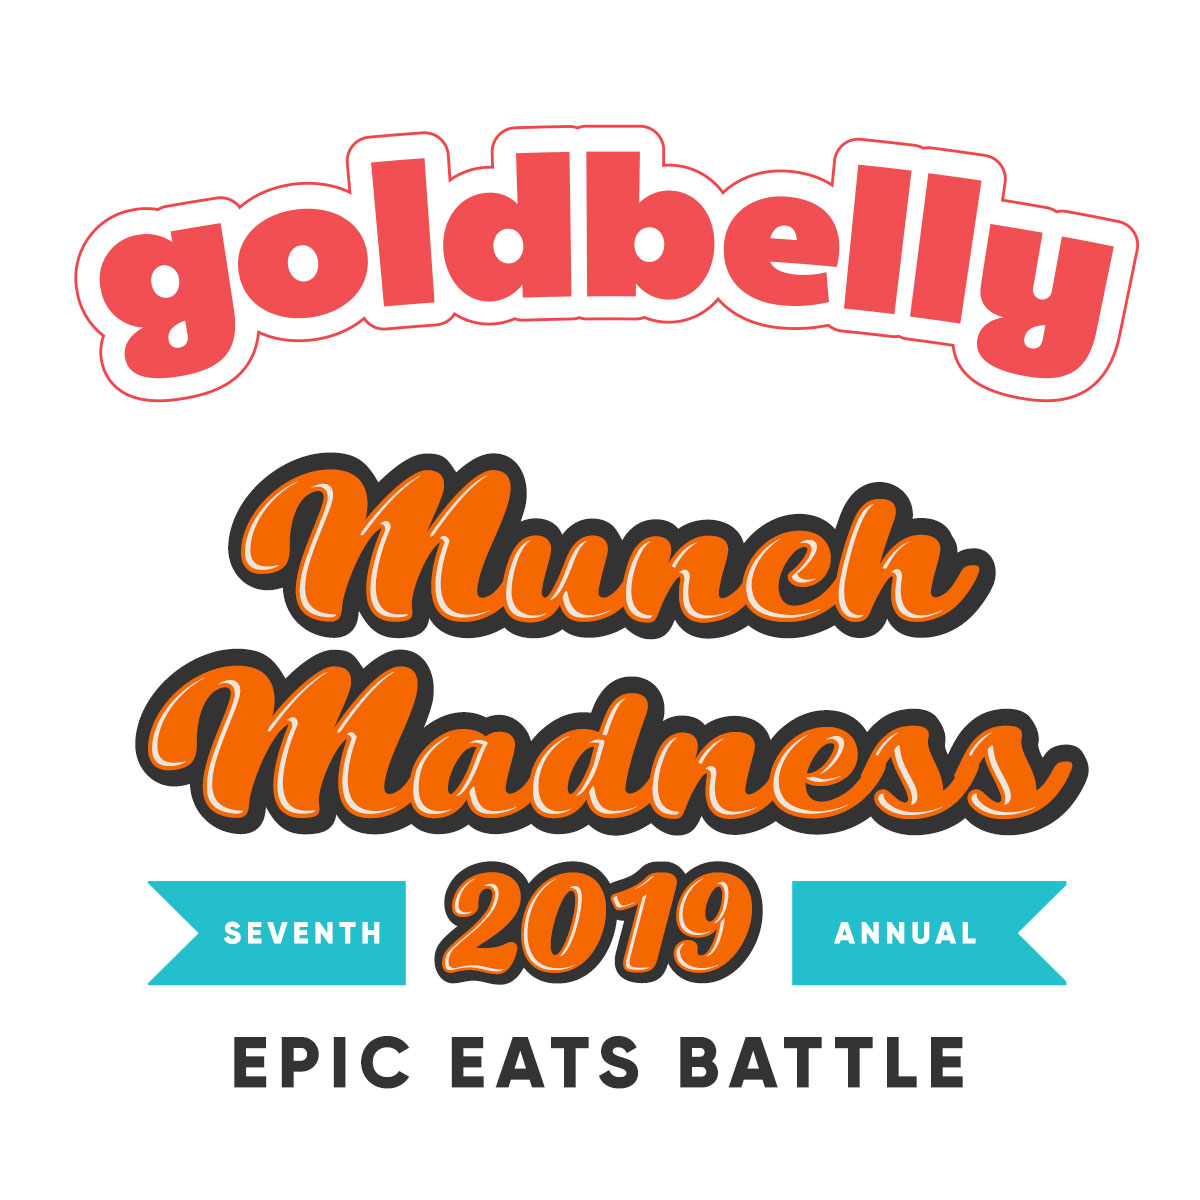 Goldbelly-Munch-Madness-Social-1200-Square-White-BG-V1-2.jpg